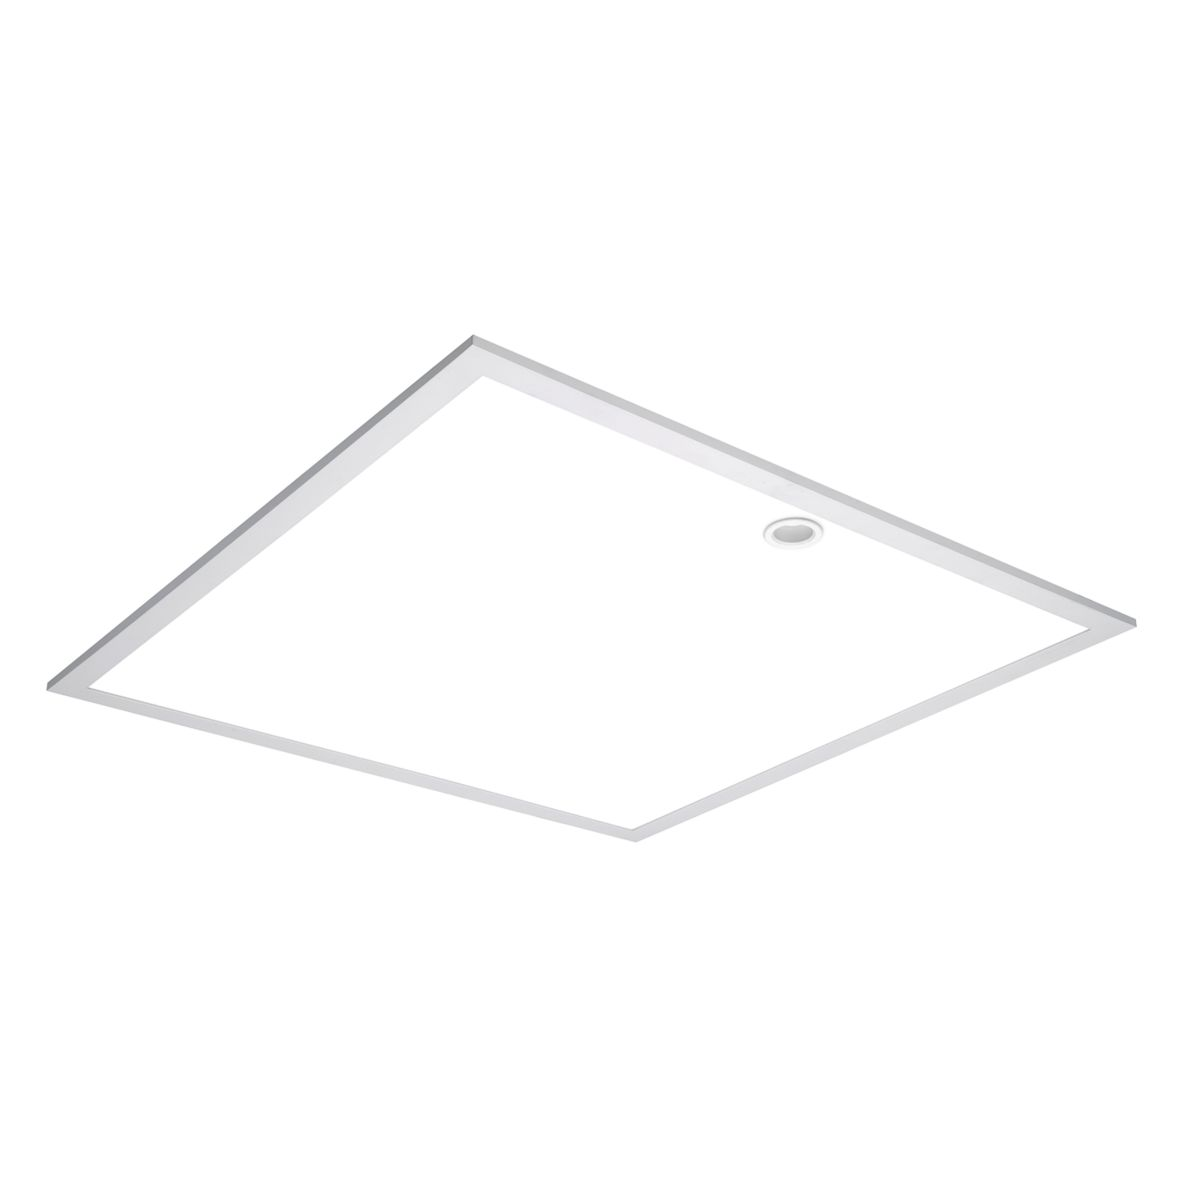 FPX LED Panel Series